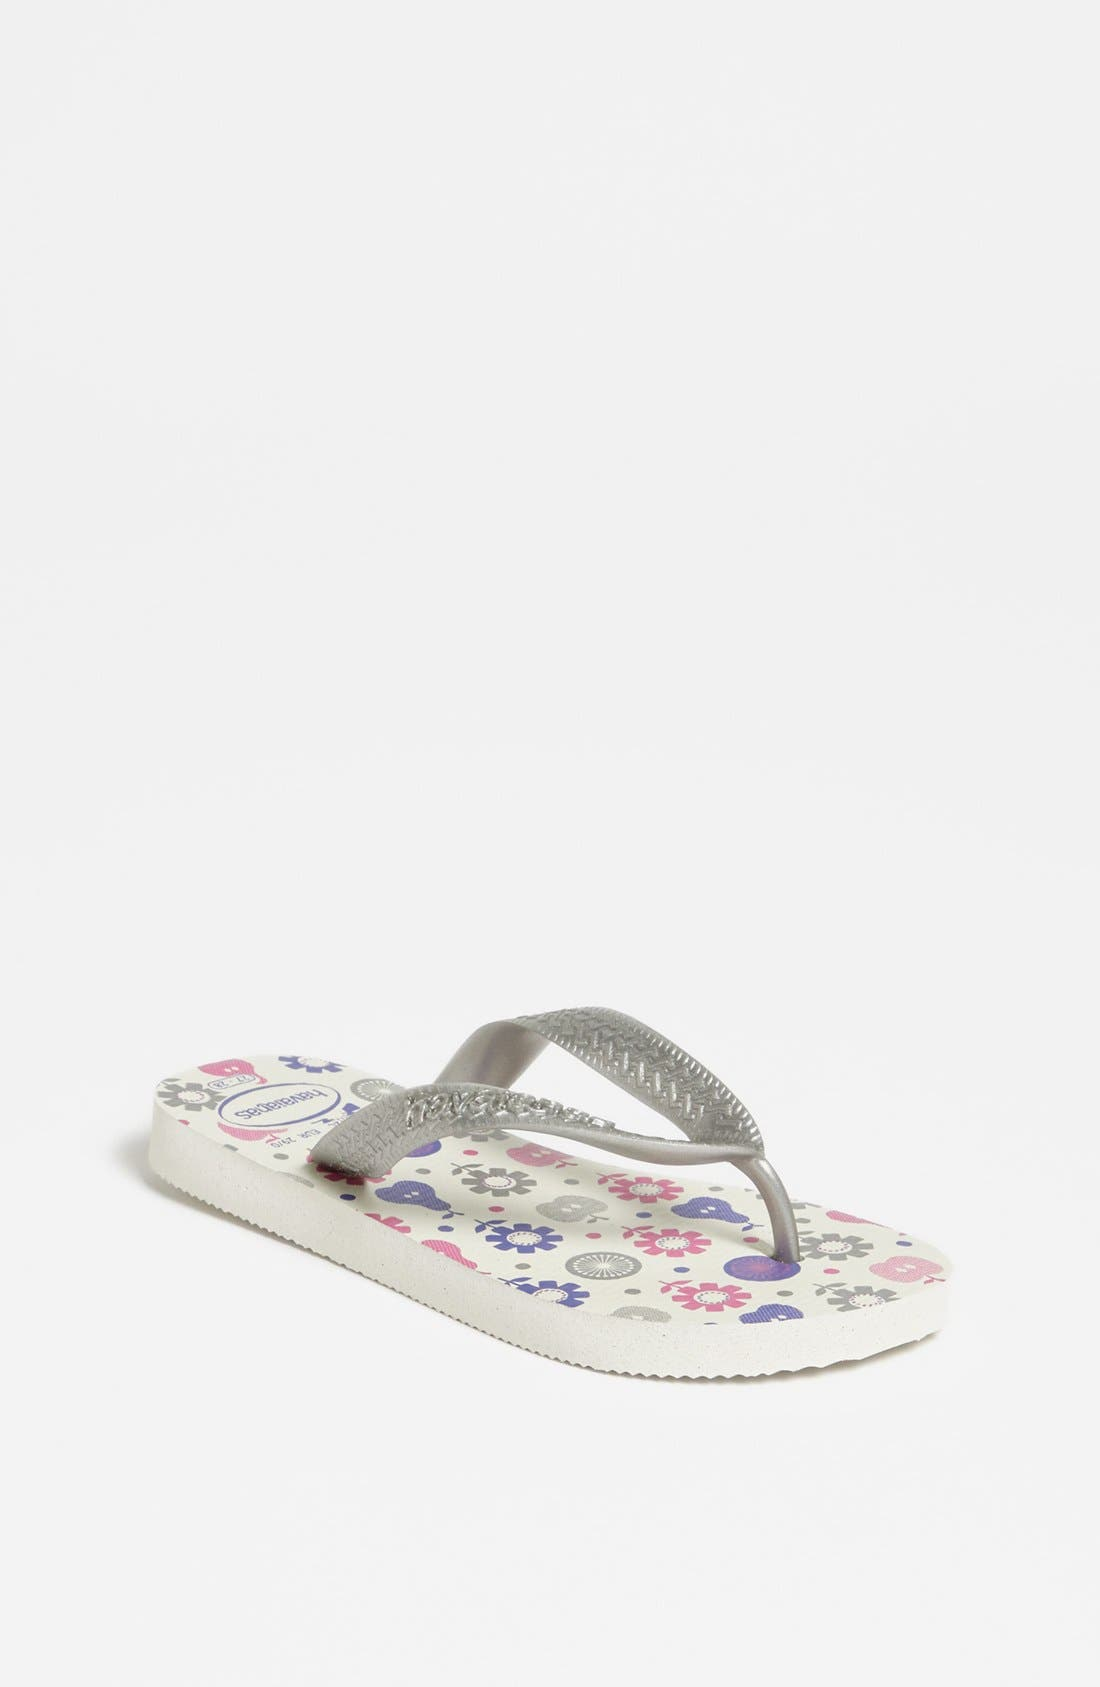 Alternate Image 1 Selected - Havaianas 'Flores' Flip Flop (Toddler & Little Kid)